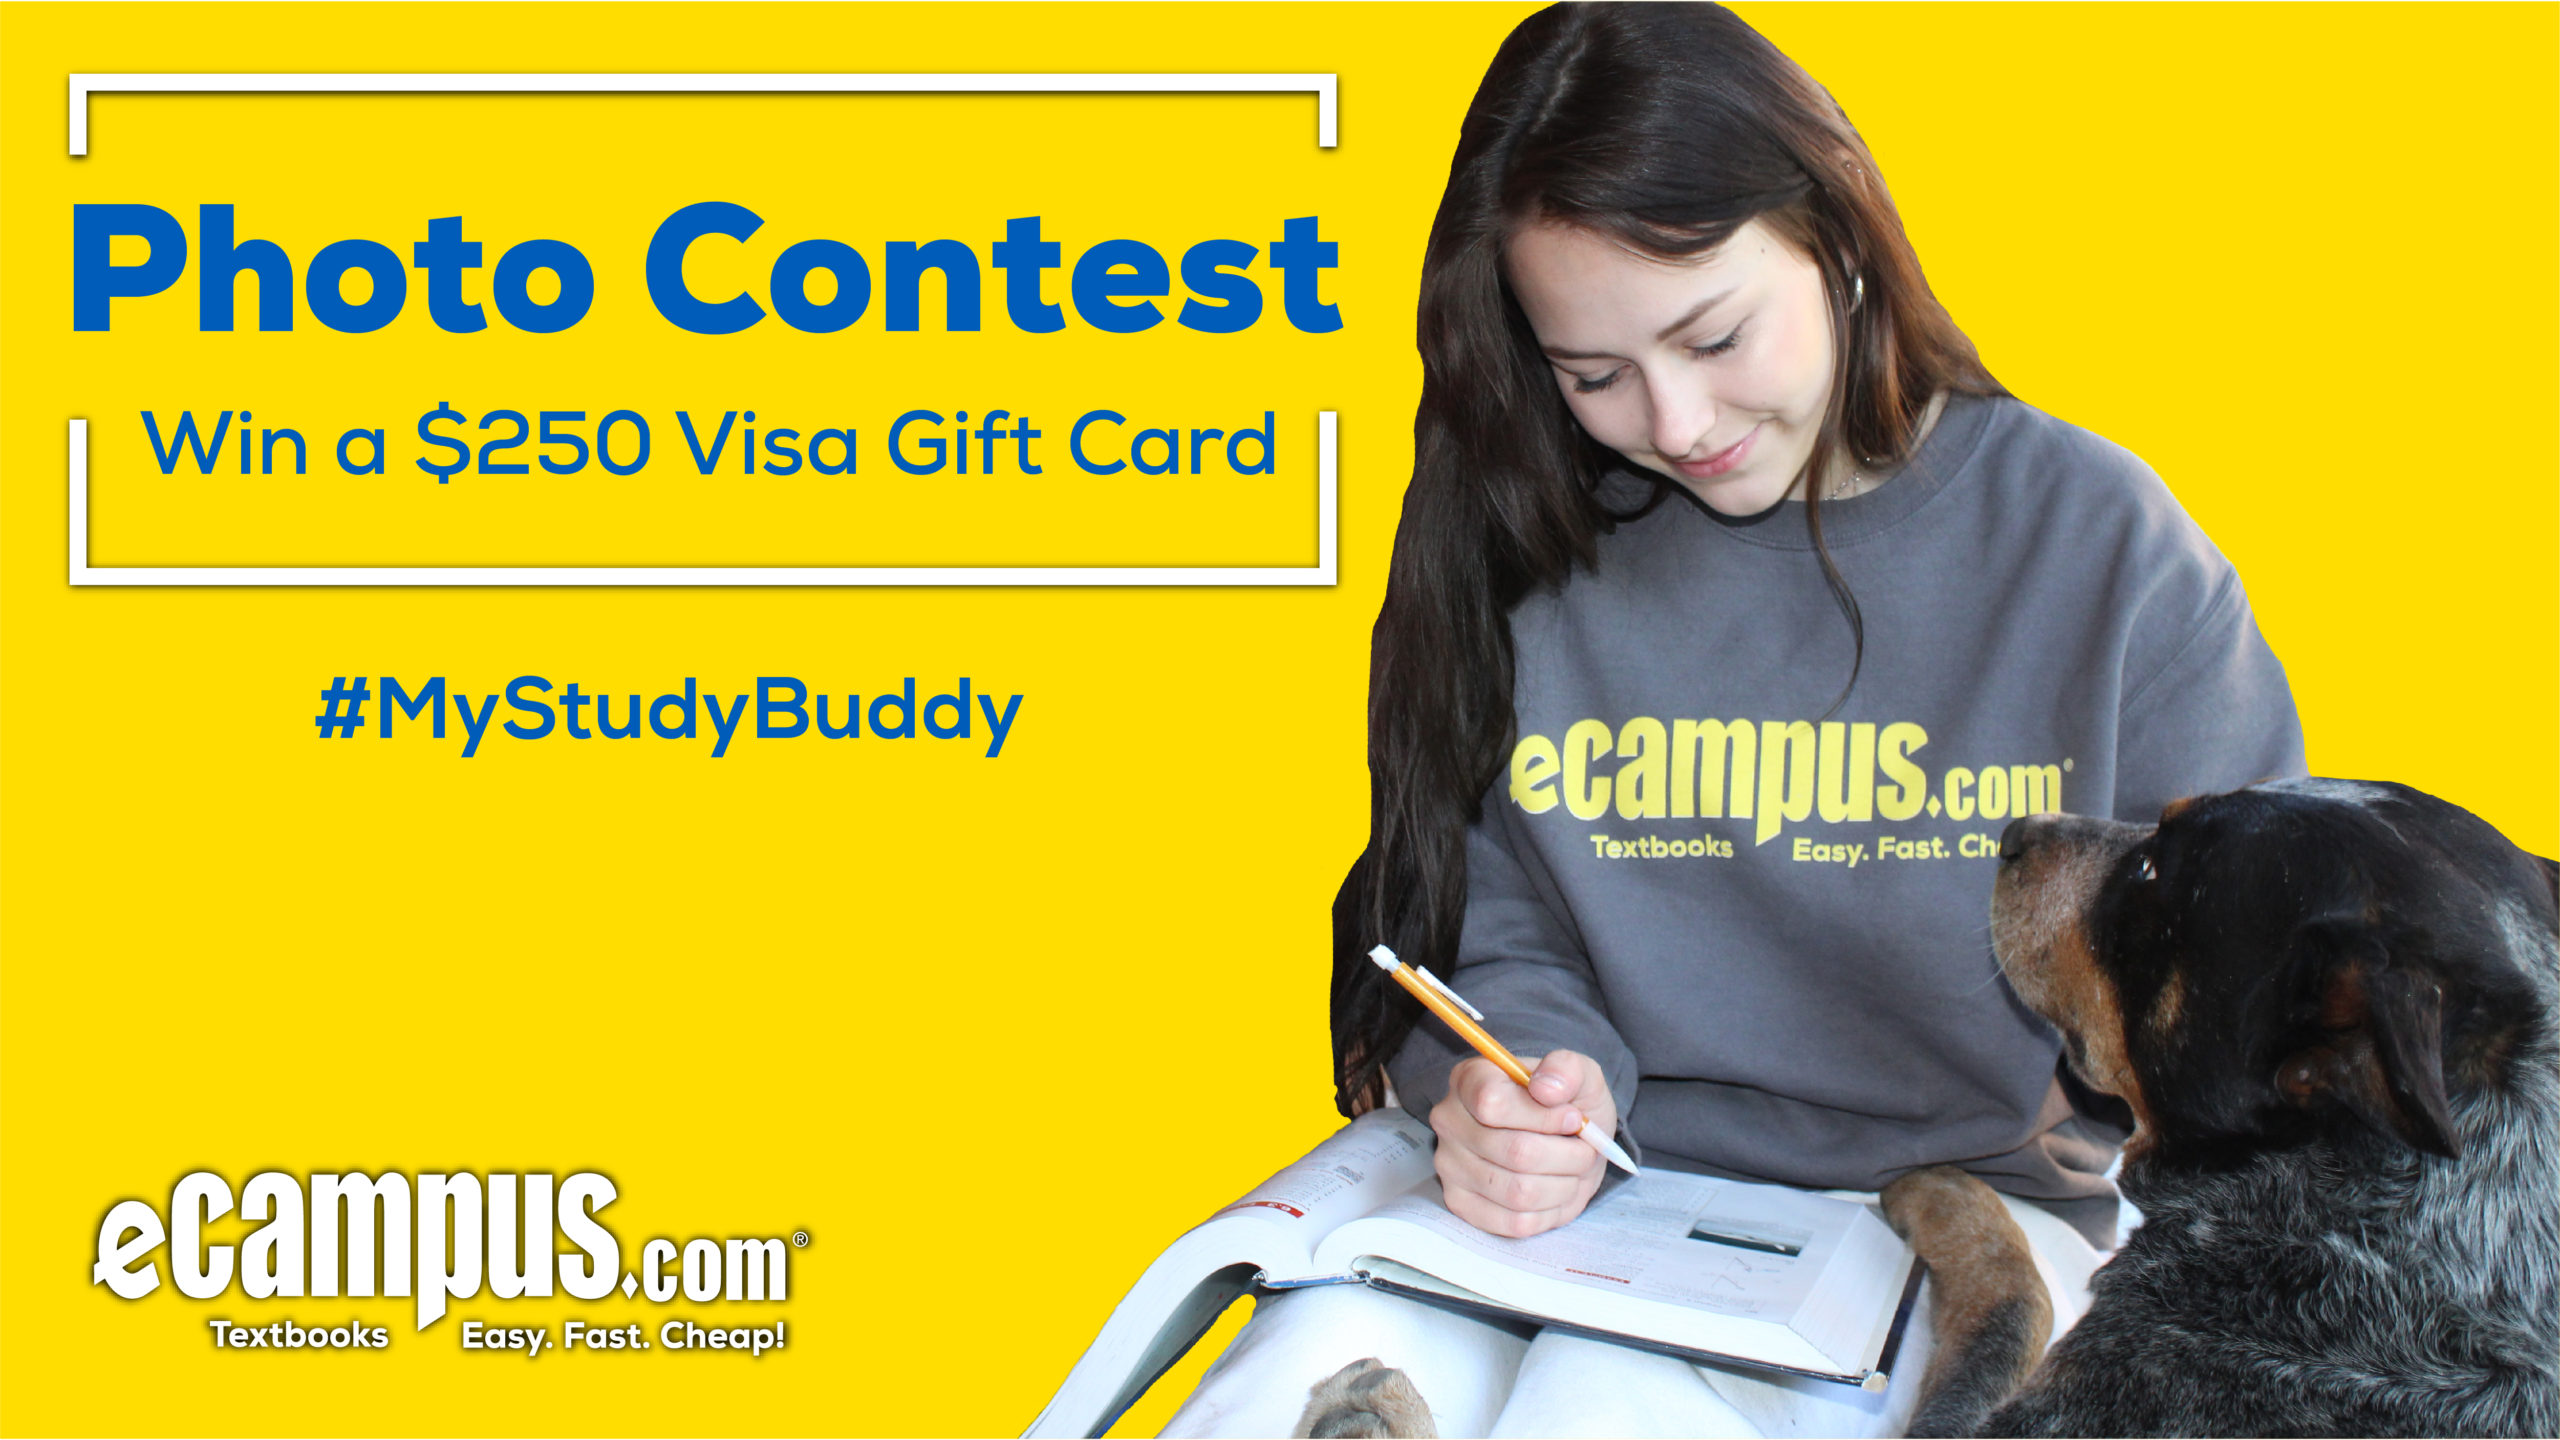 #MyStudyBuddy Photo Contest Winners